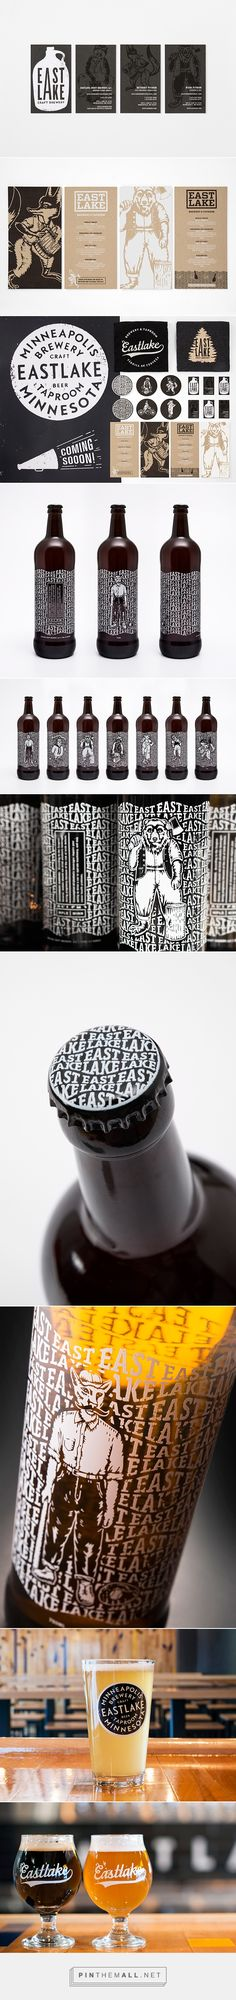 Eastlake Craft Brewery packaging branding on Behance by Rice Creative curated by Packaging Diva PD. Who wants a glass of beer now? #packaging #design #branding